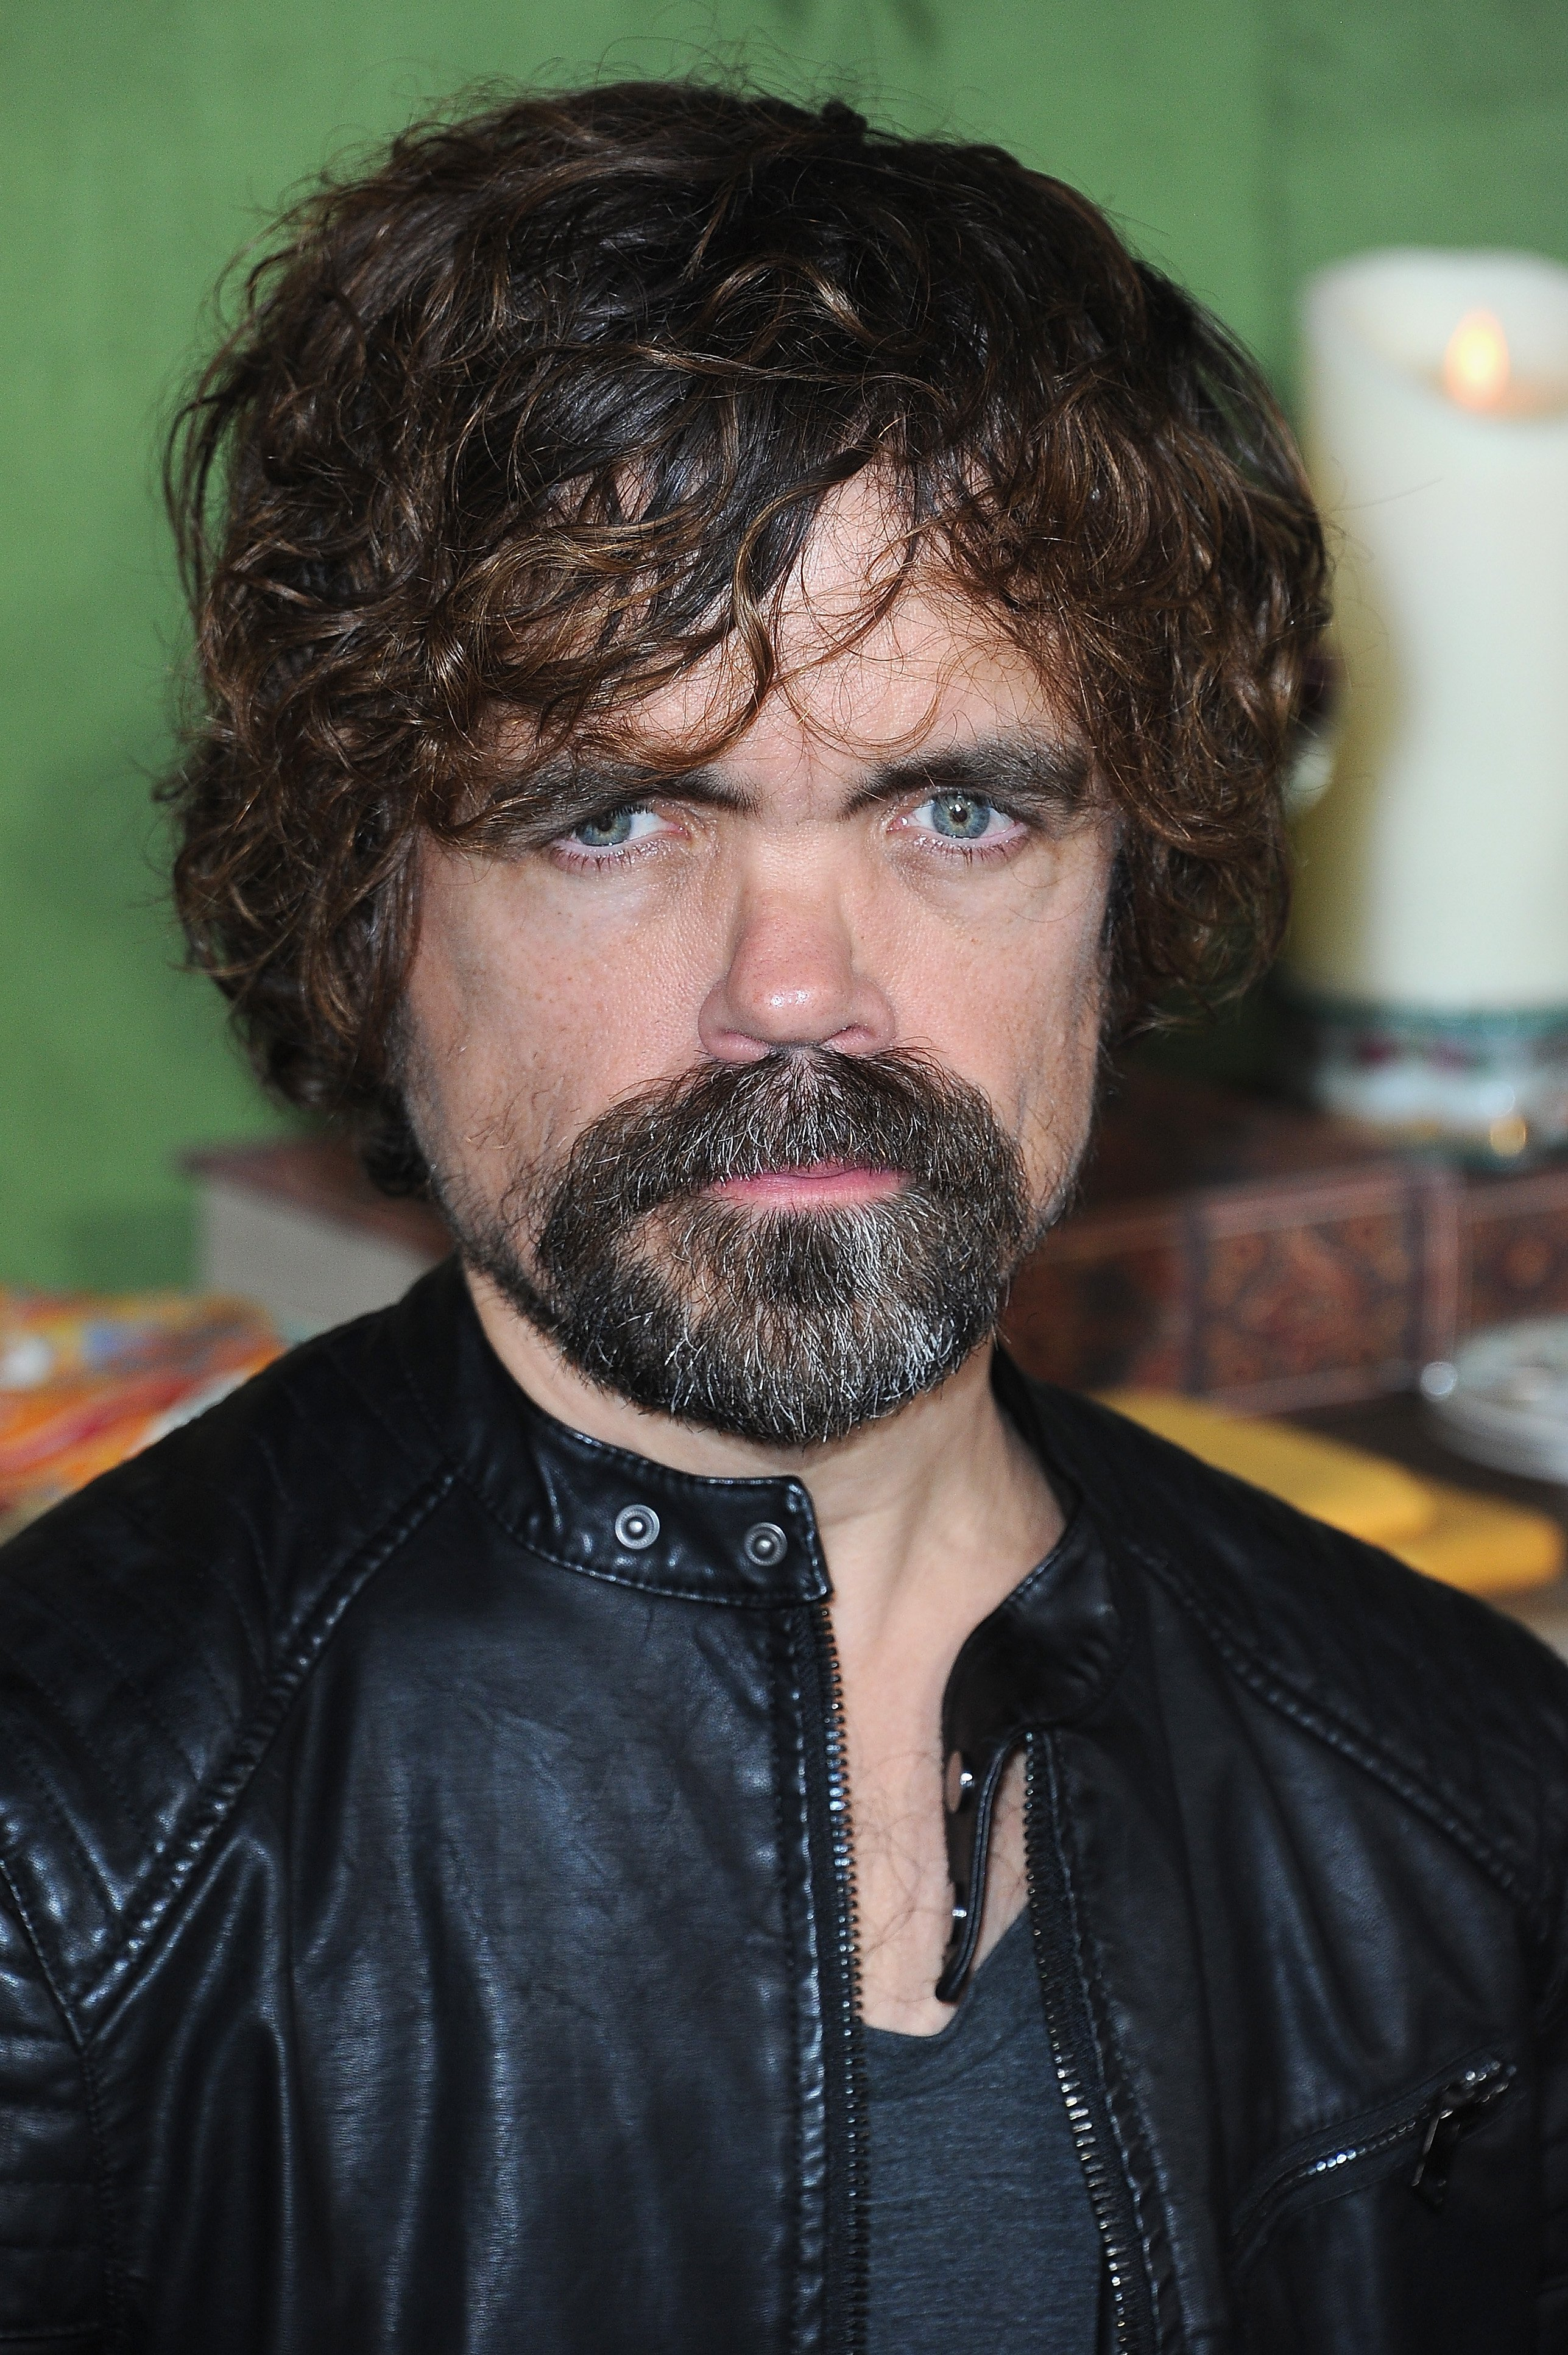 Peter Dinklage on October 4, 2018 in Hollywood, California | Source: Getty Images